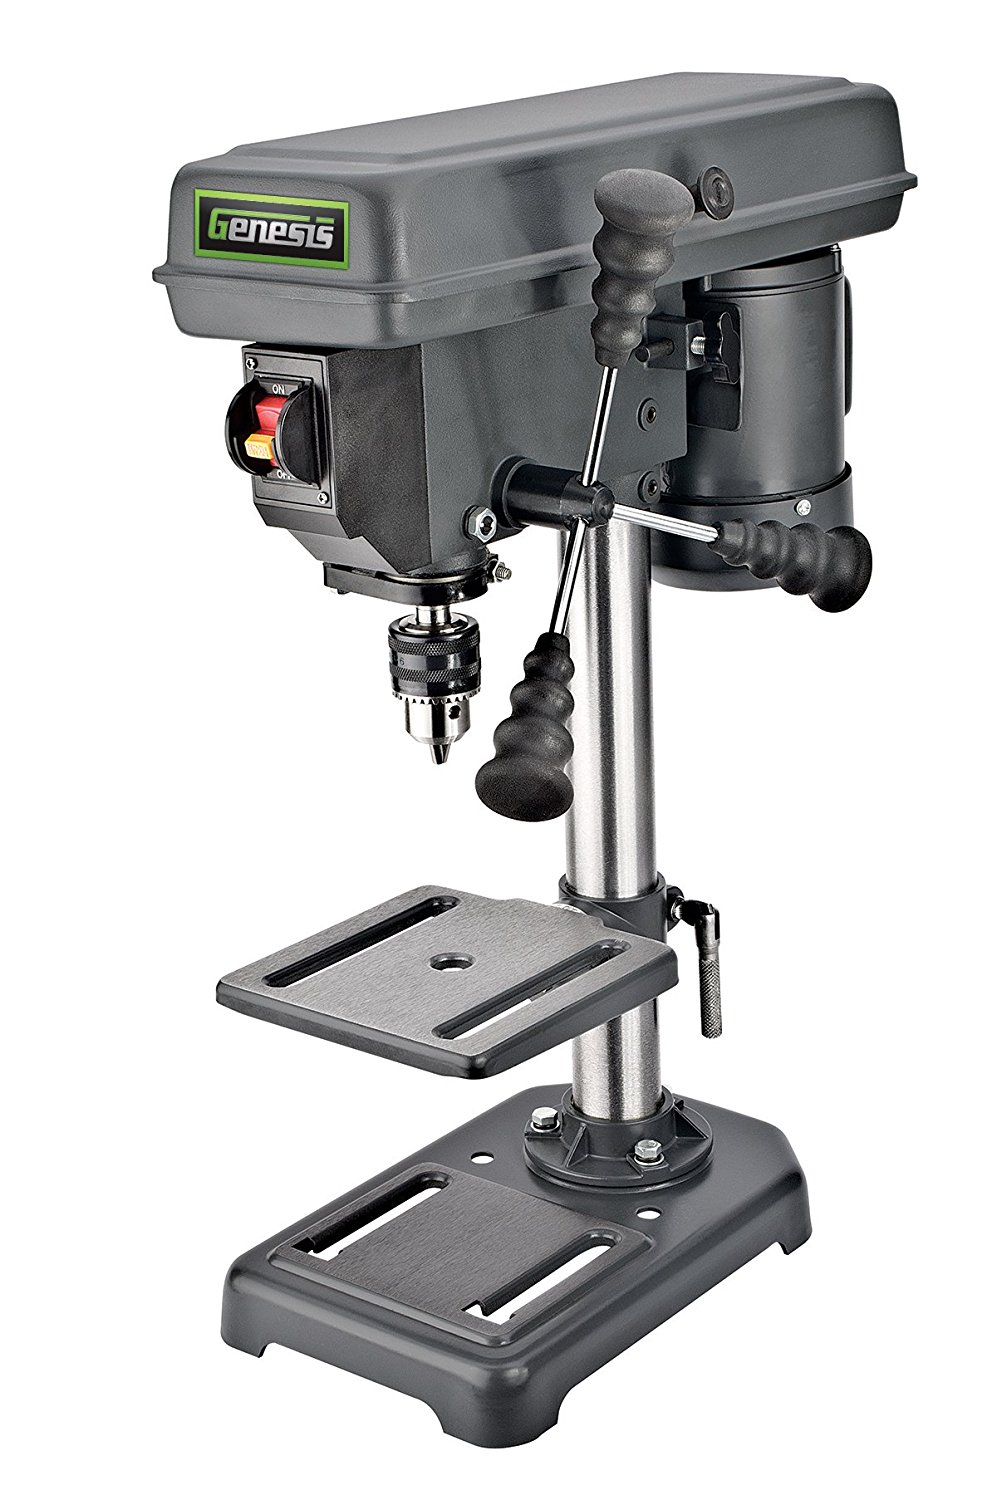 Genesis GDP805P 8 In. 5-Speed 2.6 Amp Drill Press with 1/2 In. Chuck & Tilt Table